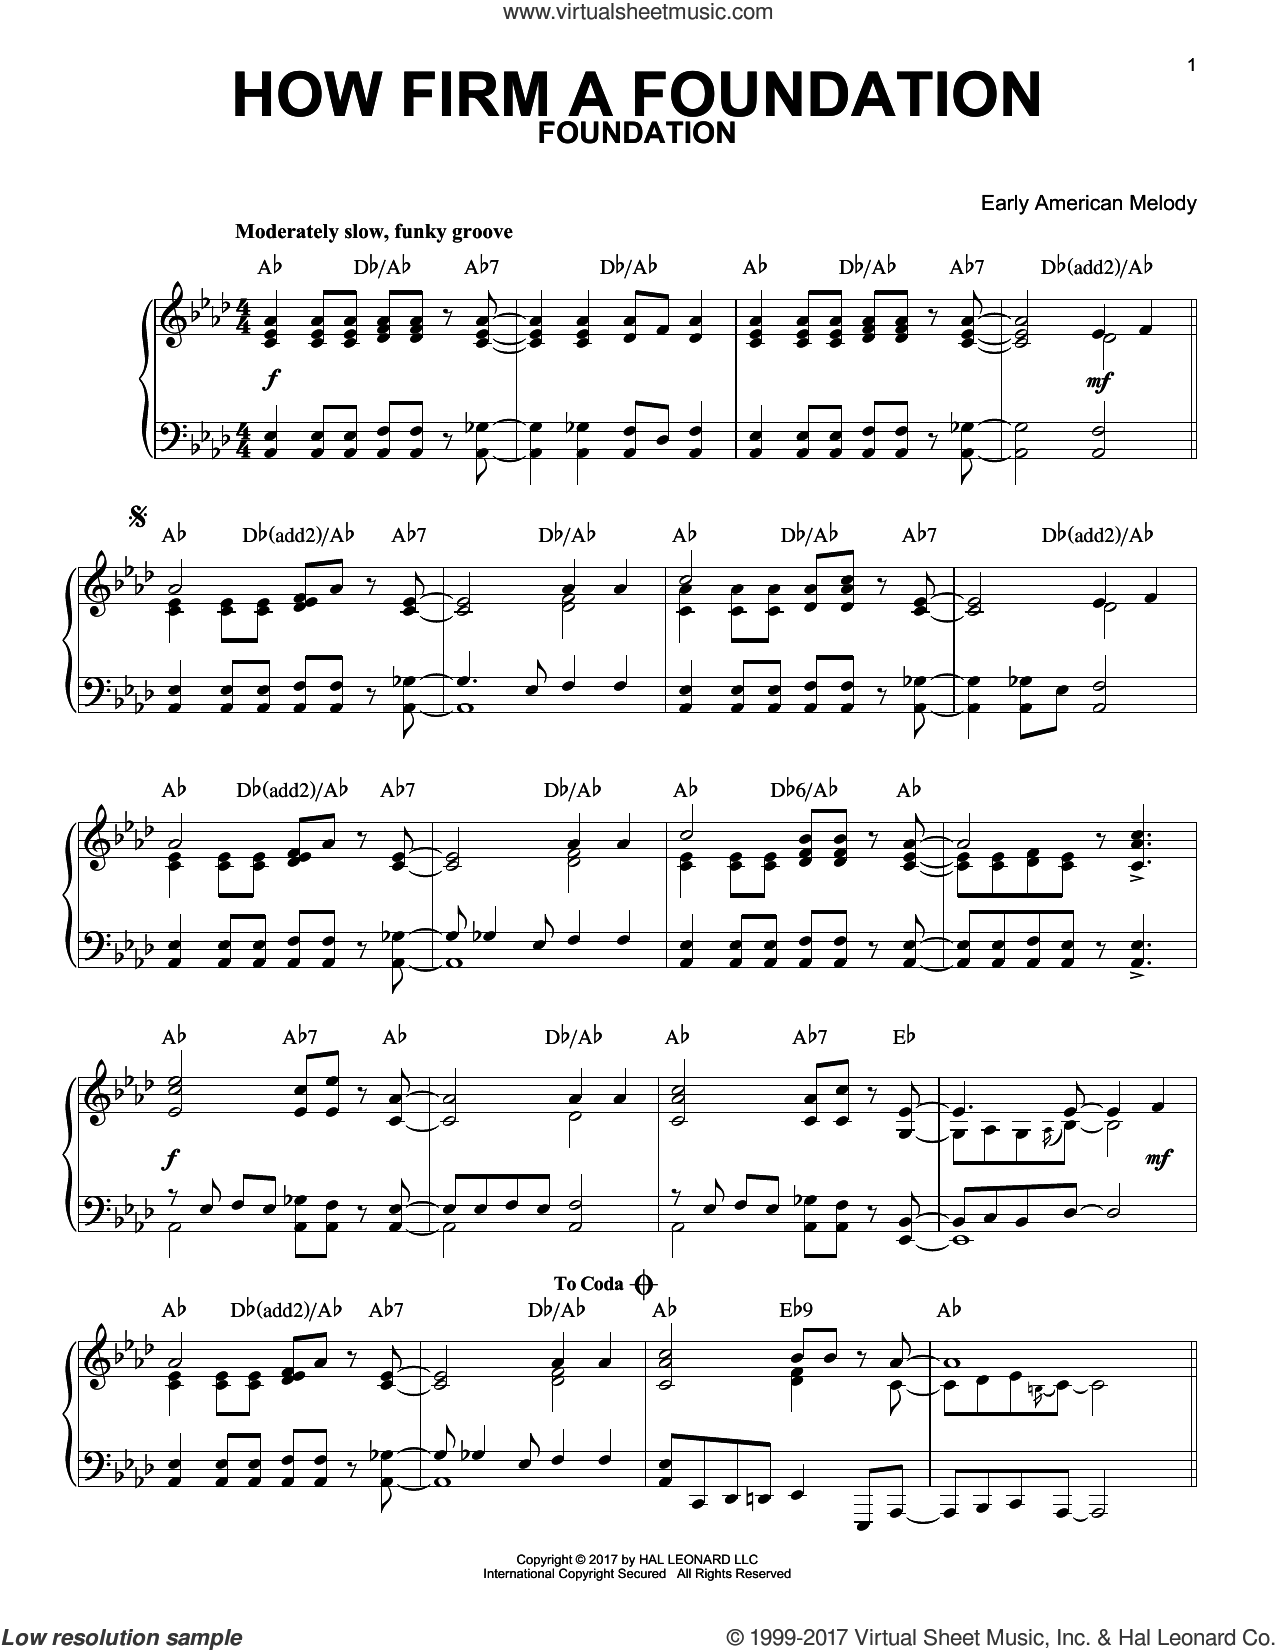 How Firm a Foundation [Jazz version] sheet music for piano solo by John Rippon and Miscellaneous, intermediate skill level